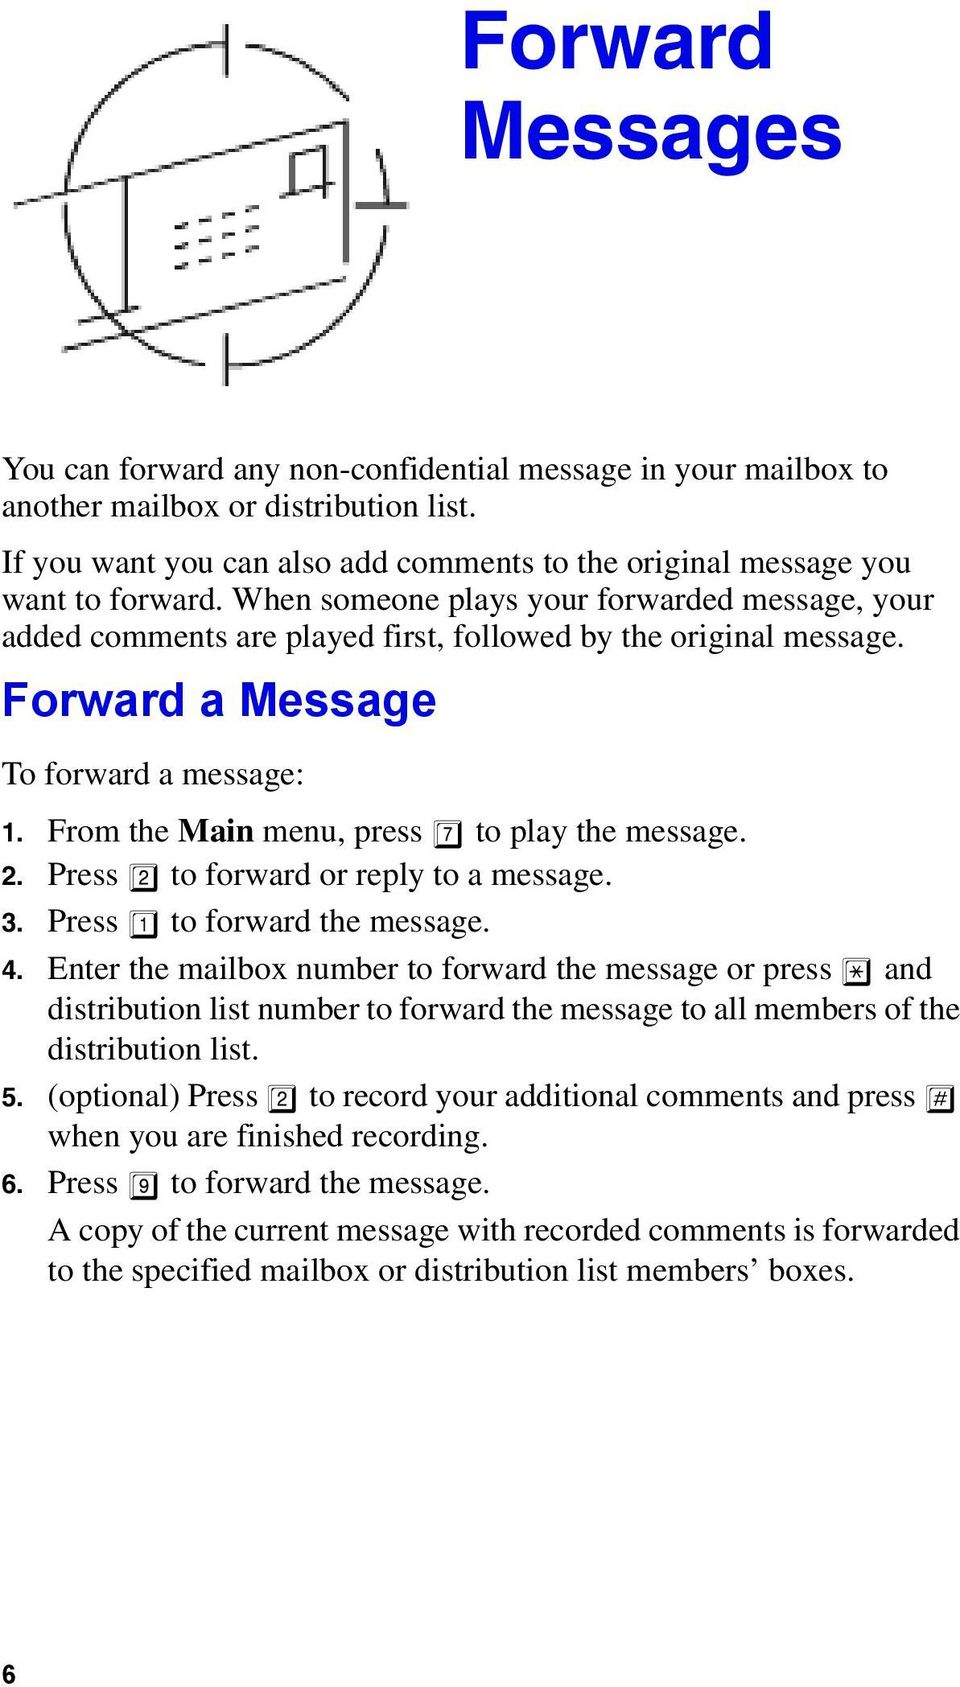 Forward a Message To forward a message: 1. From the Main menu, press 7 to play the message. 2. Press 2 to forward or reply to a message. 3. Press 1 to forward the message. 4.